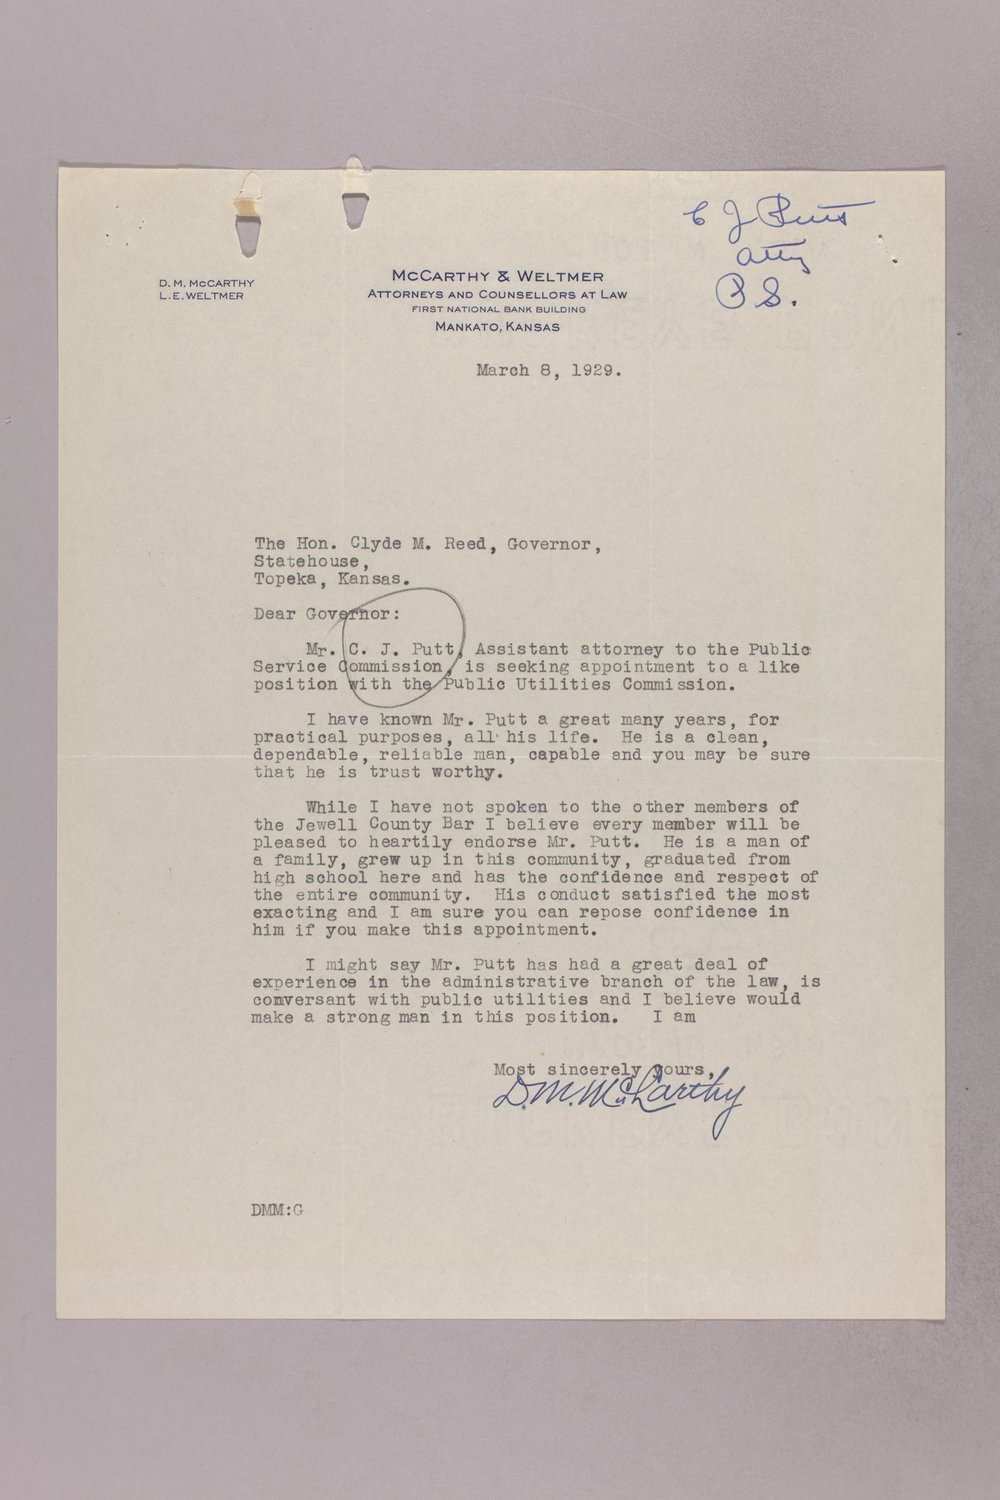 Governor Clyde M. Reed correspondence, Public Service Commission applications - 4